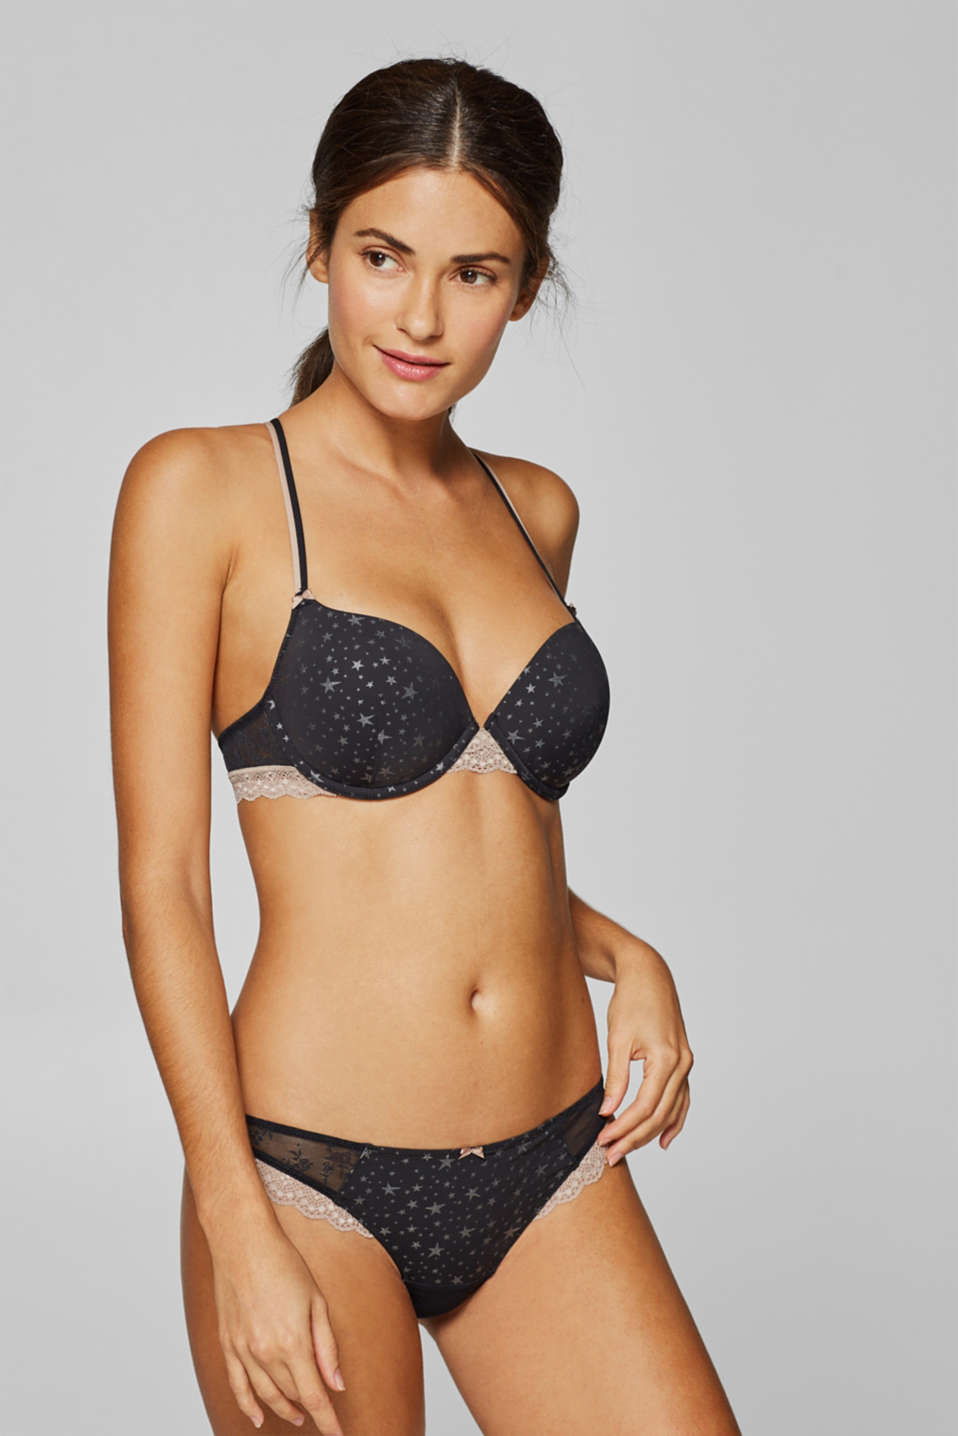 edc - Padded underwire bra with lace and a star pattern